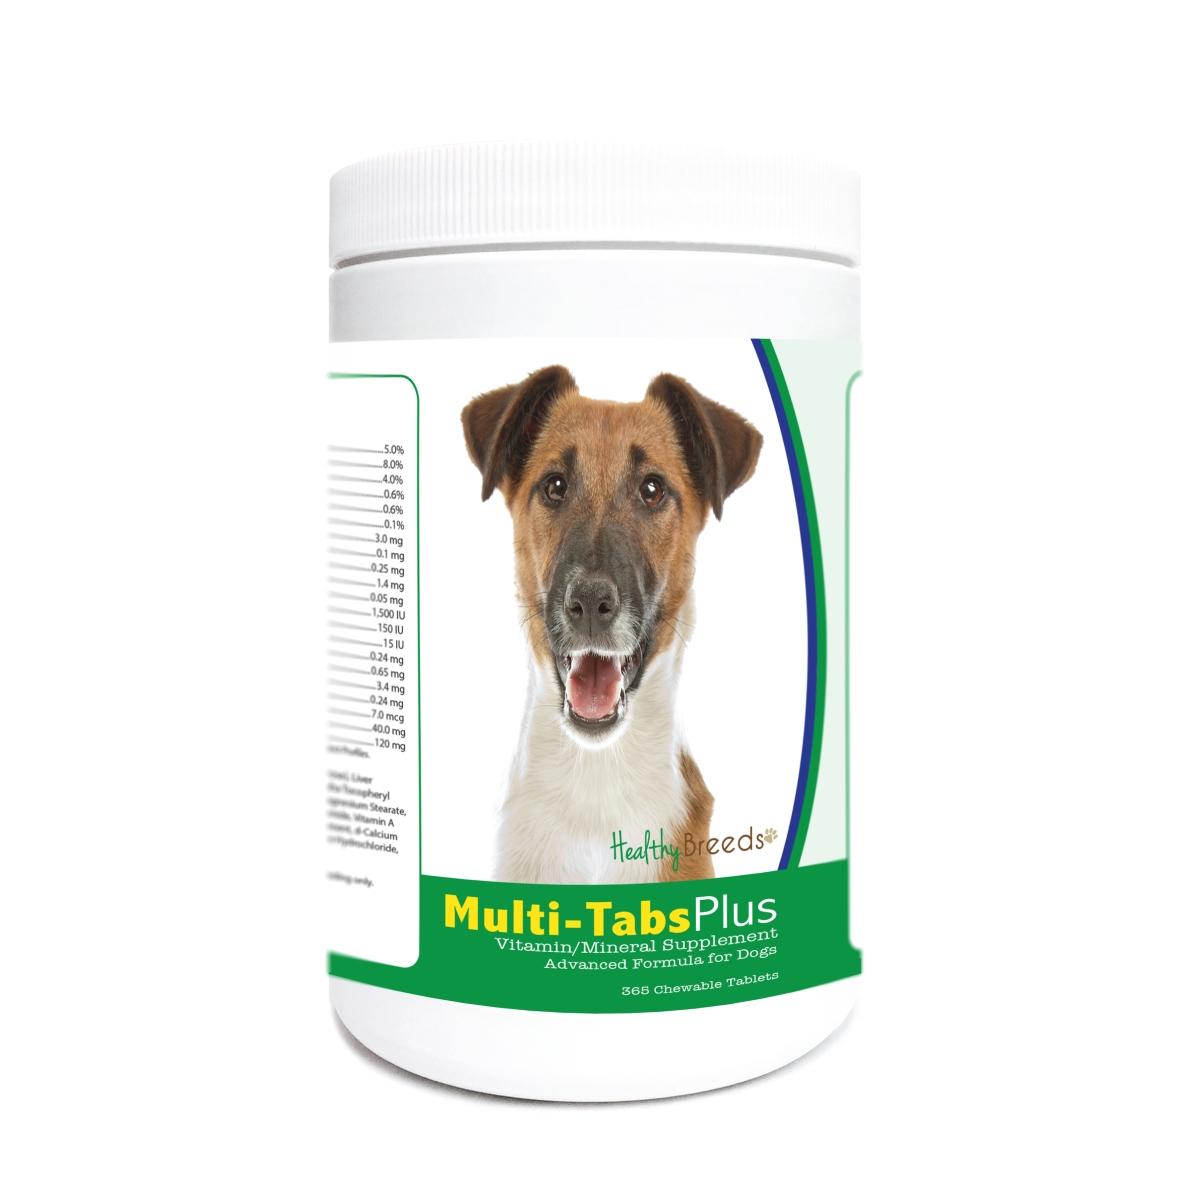 Healthy Breeds 840235171676 Smooth Fox Terrier Multi-Tabs Plus Chewable Tablets - 365 Count